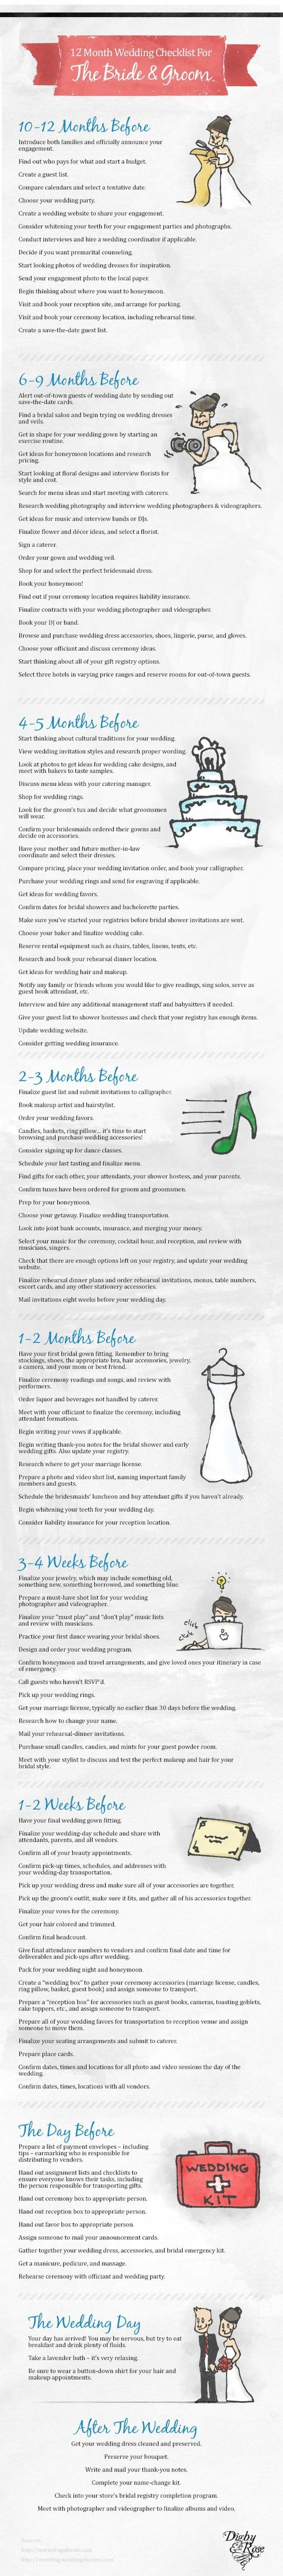 12 month wedding to-do checklist! Organization to a T ... as it should be!